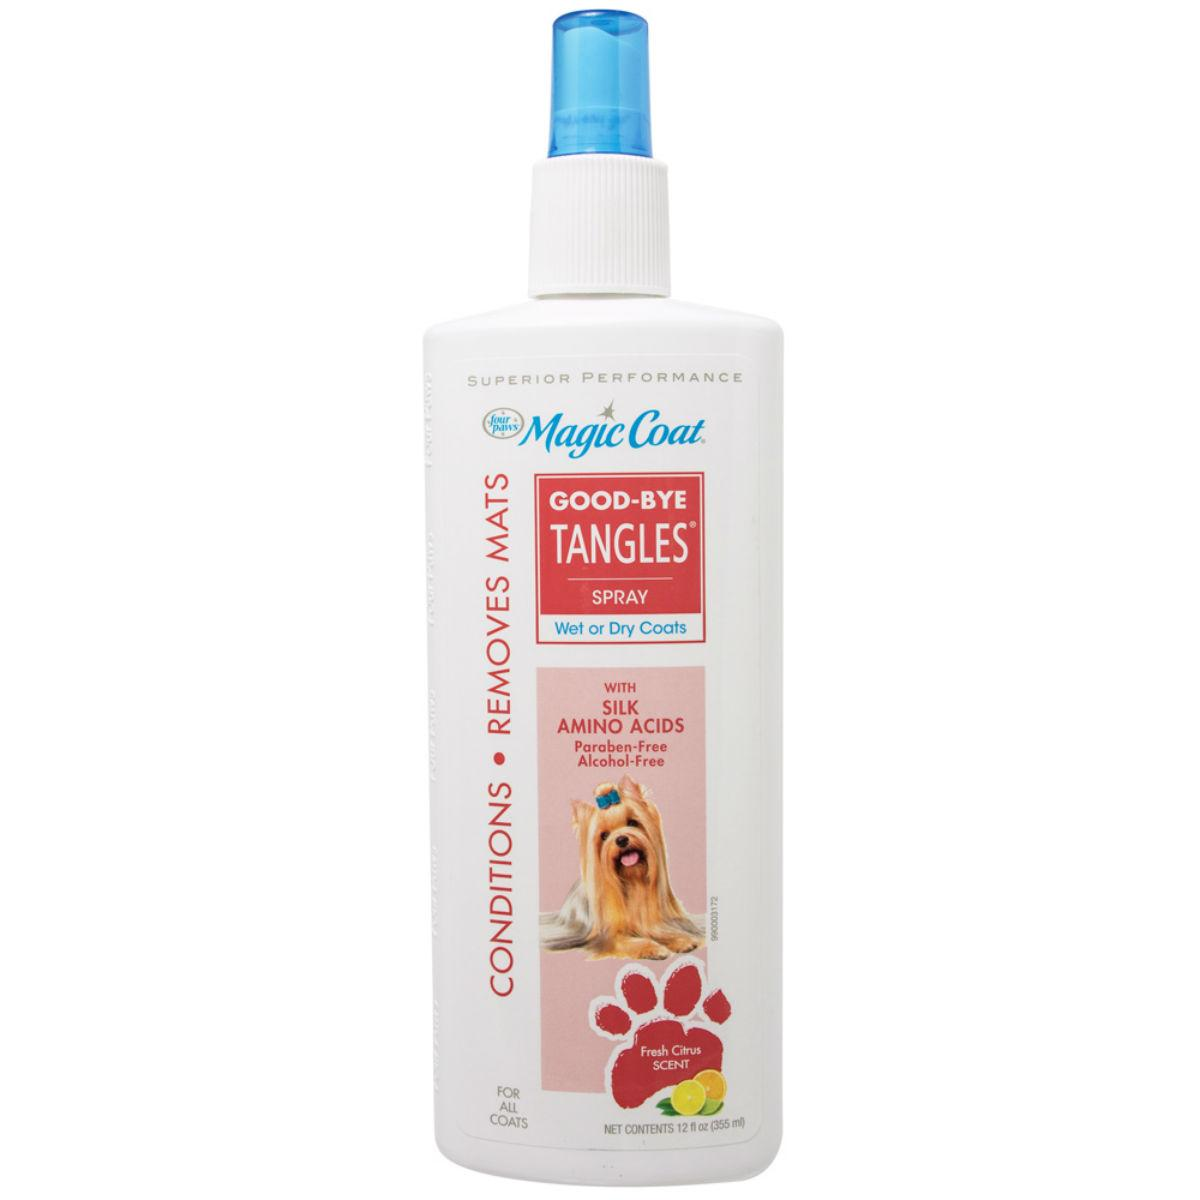 Four Paws Magic Coat Good-Bye Tangles Spray Dog Conditioner